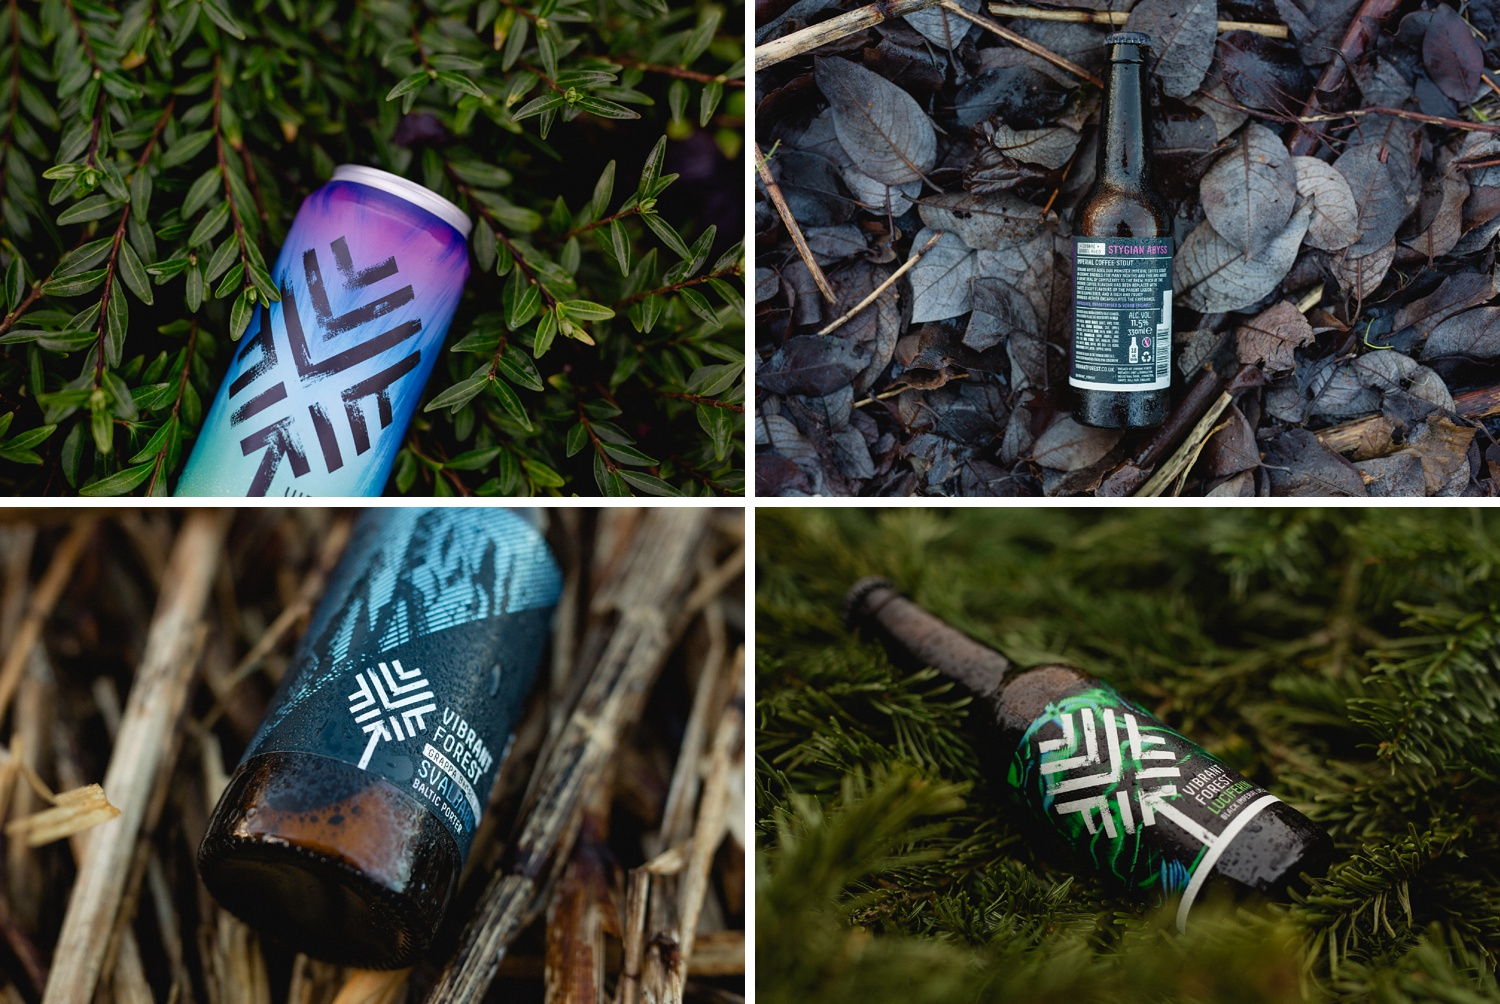 Graphic design photography details of beer bottle shots